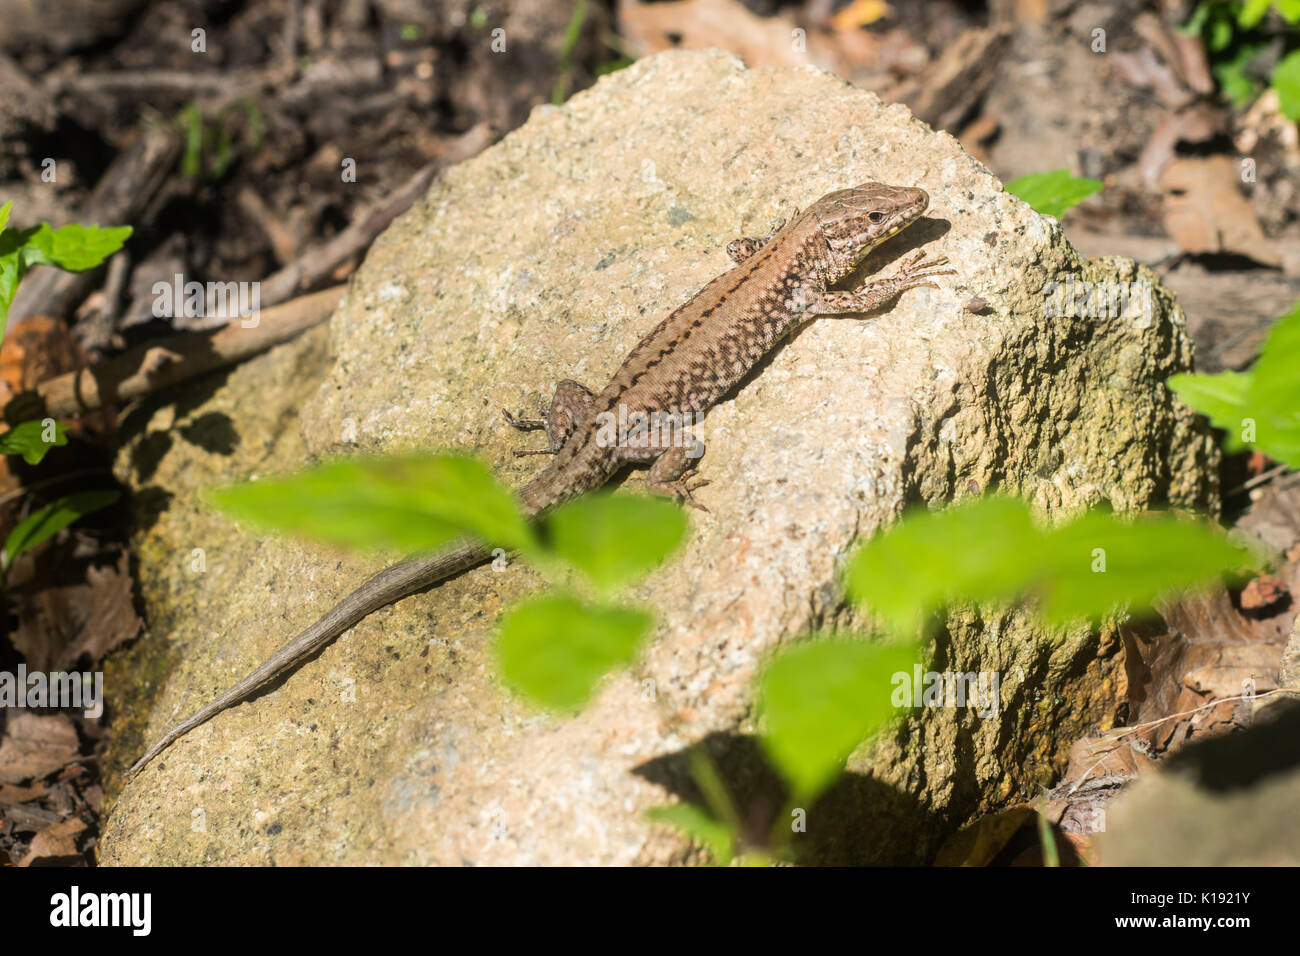 Beautiful lizard in Montseny (Catalonia) - Stock Image